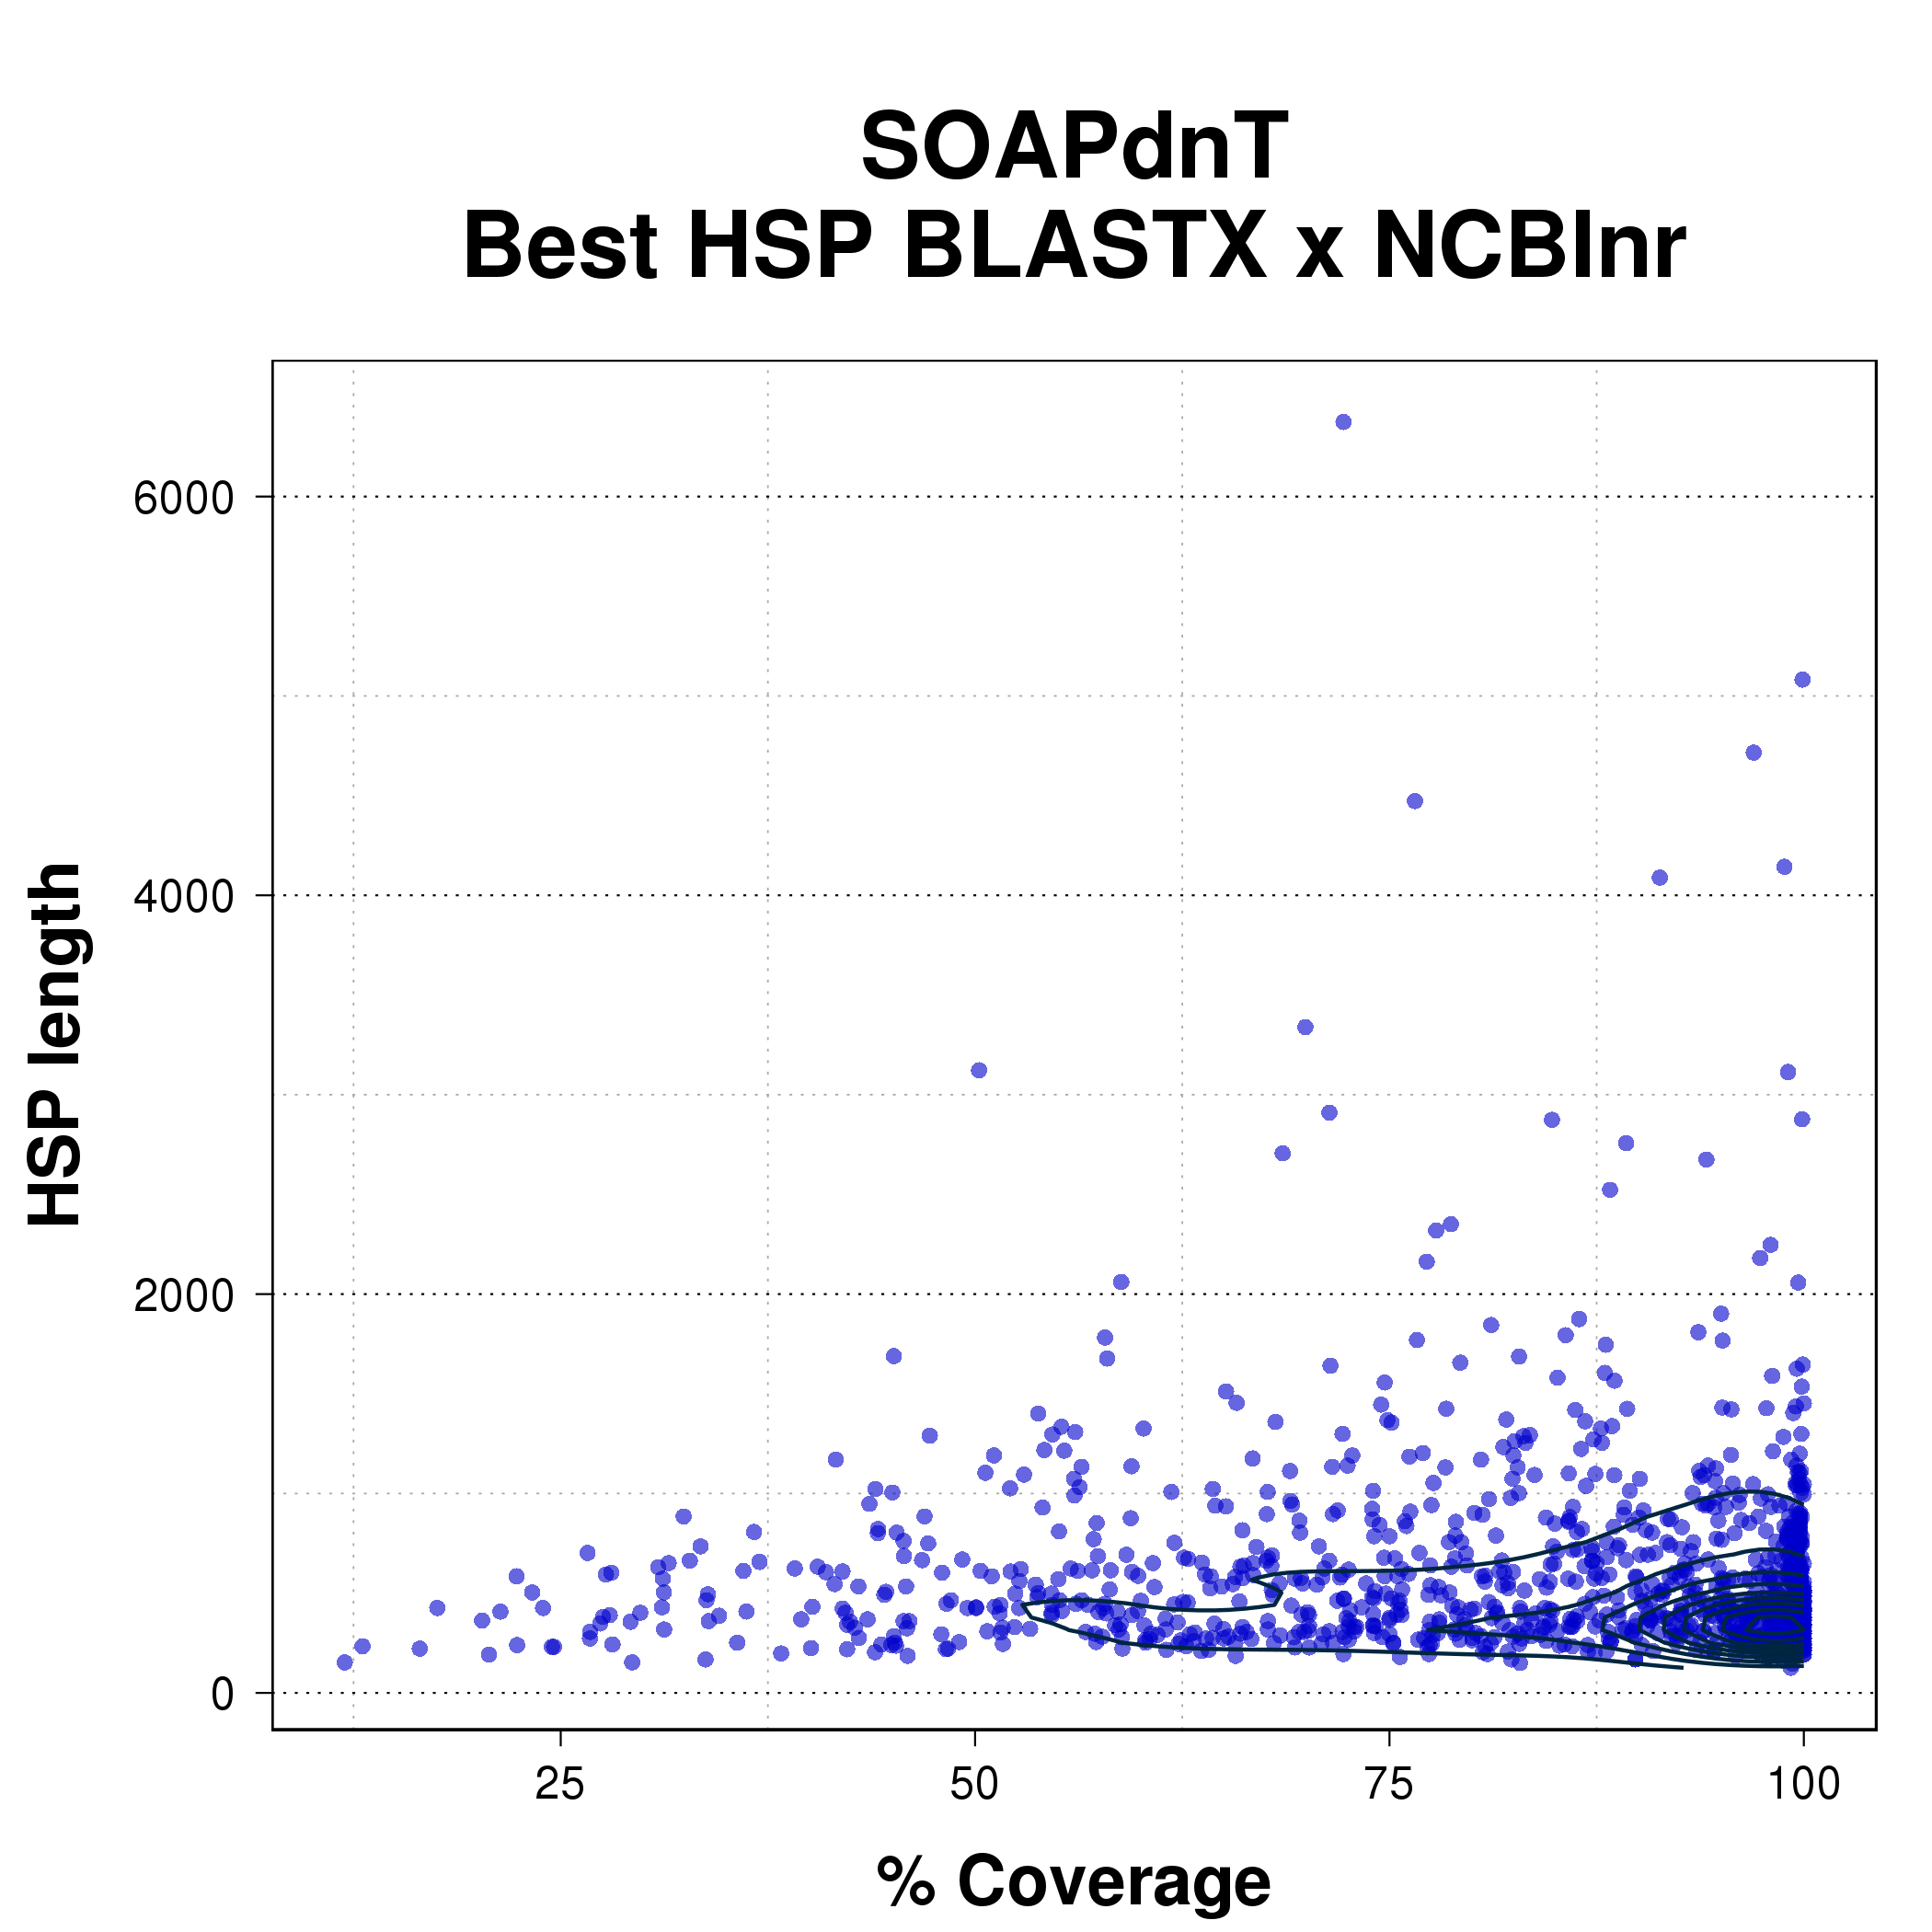 Scatterplot comparing coverage percent with HSP length for the best HSP from BLASTX of SOAPdenovo-Trans assembly against NCBInr.